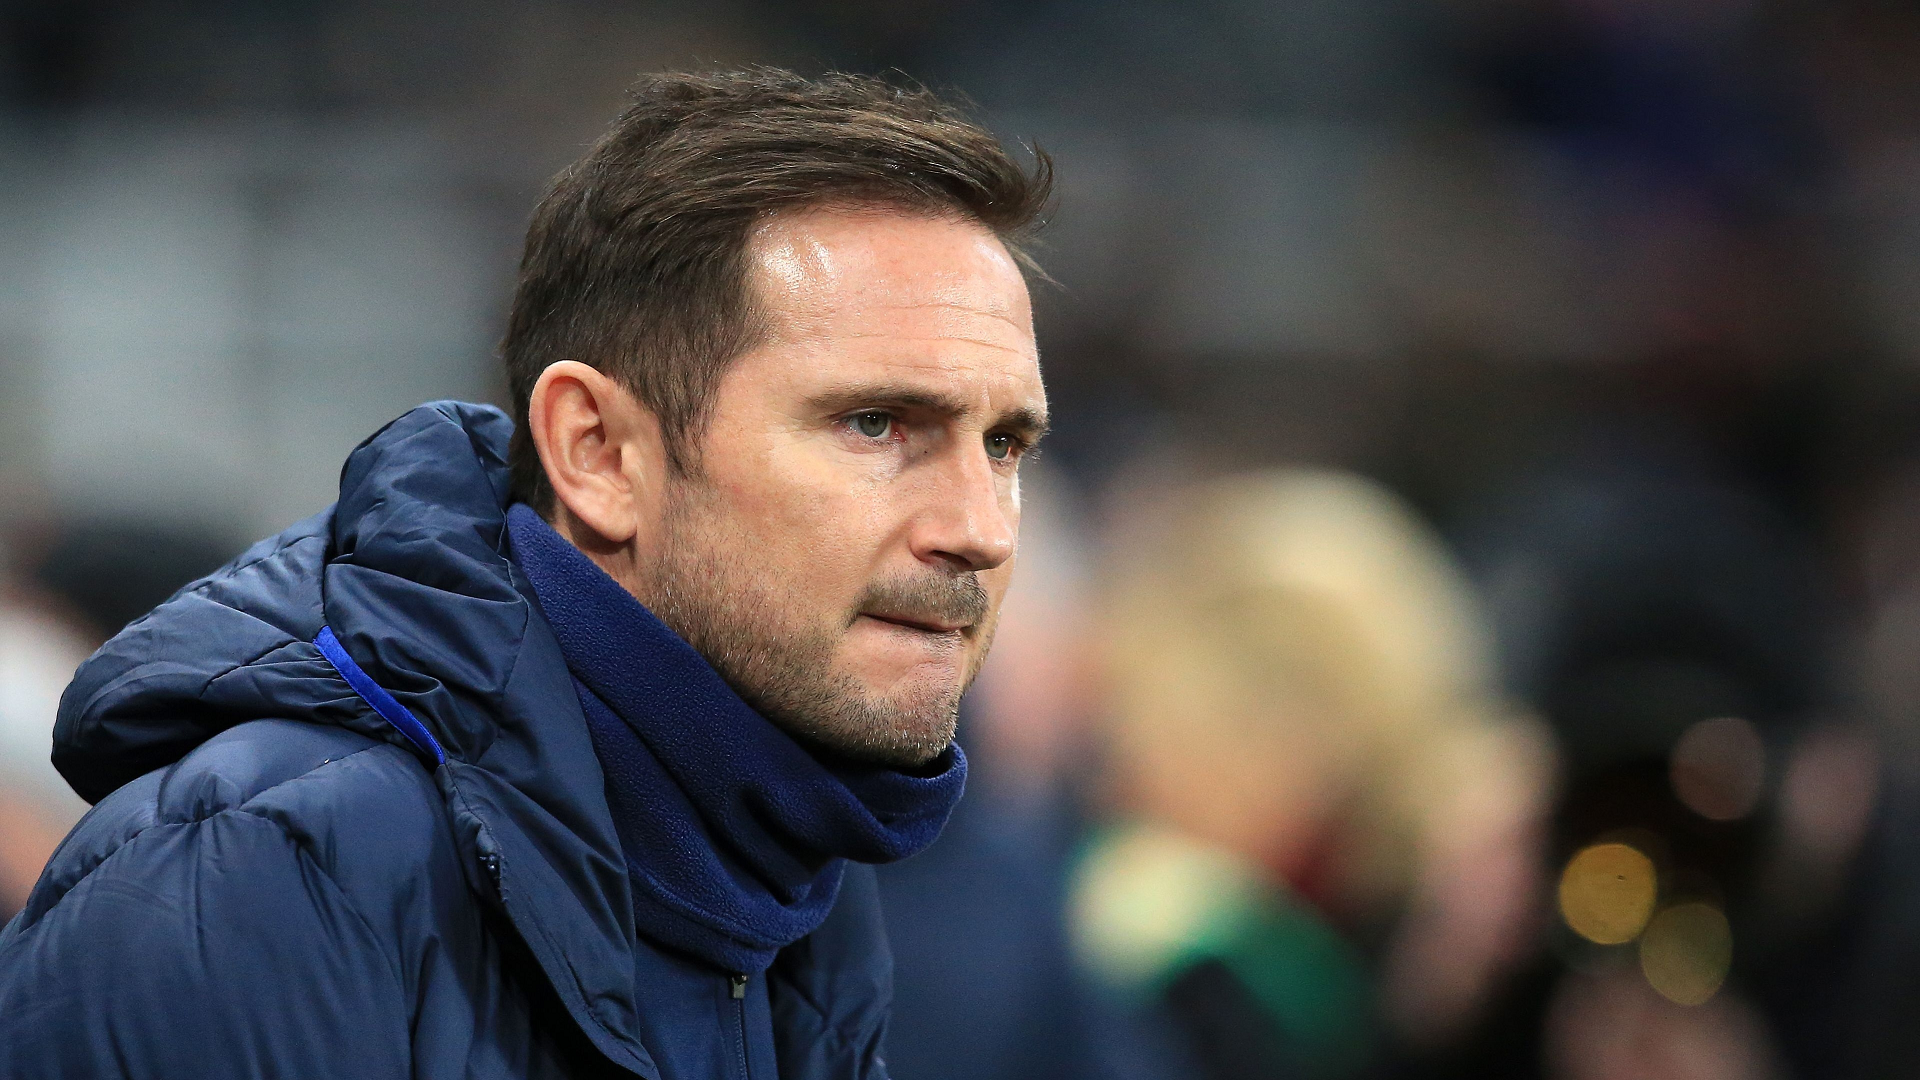 'Pretty happy' Lampard reflects on his first season in charge at Chelsea